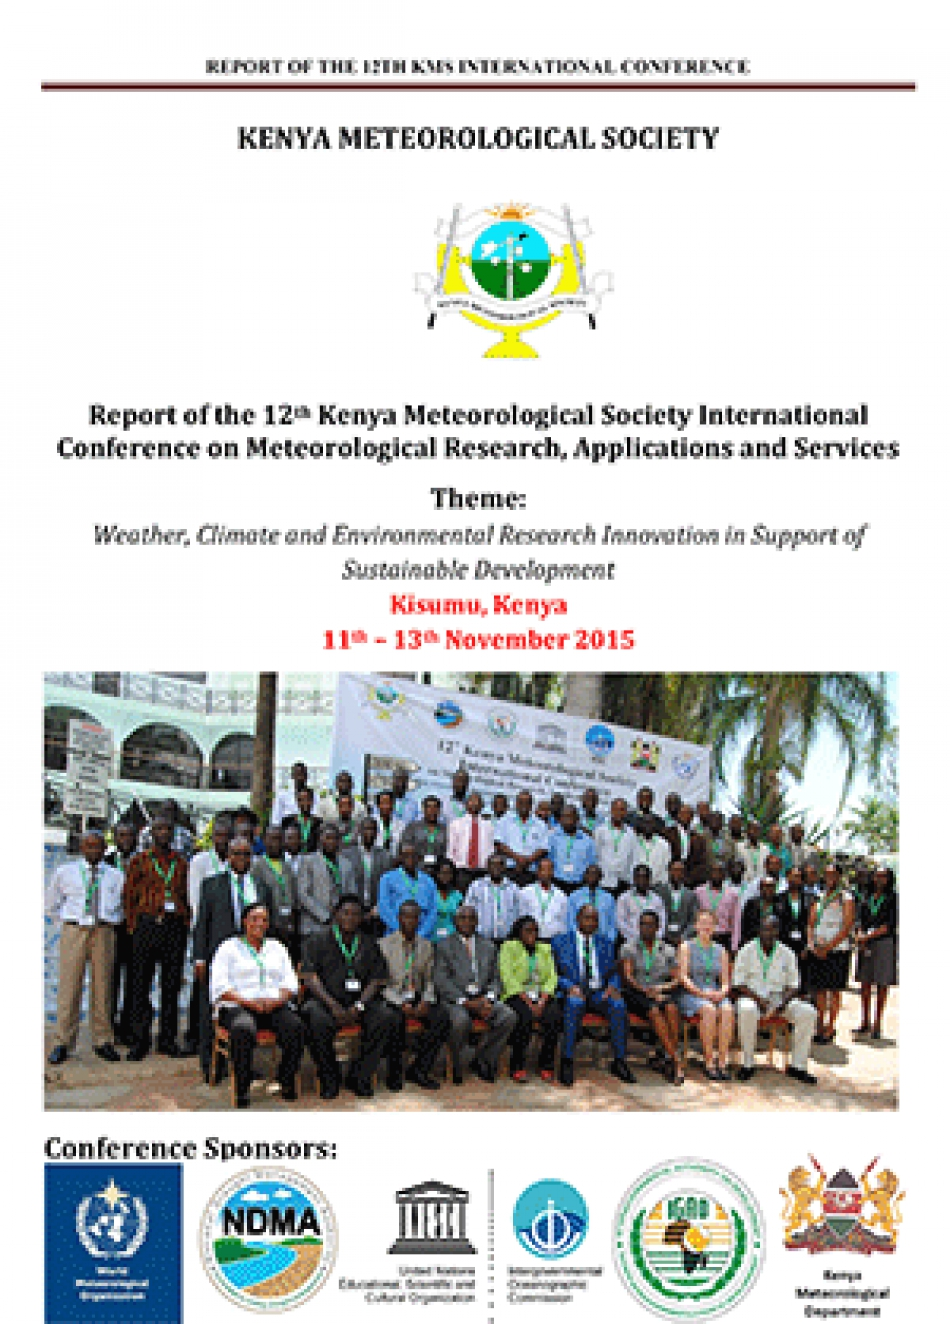 Report of the 12th Kenya Meteorological Society International Conference on Meteorological Research, Applications and Services